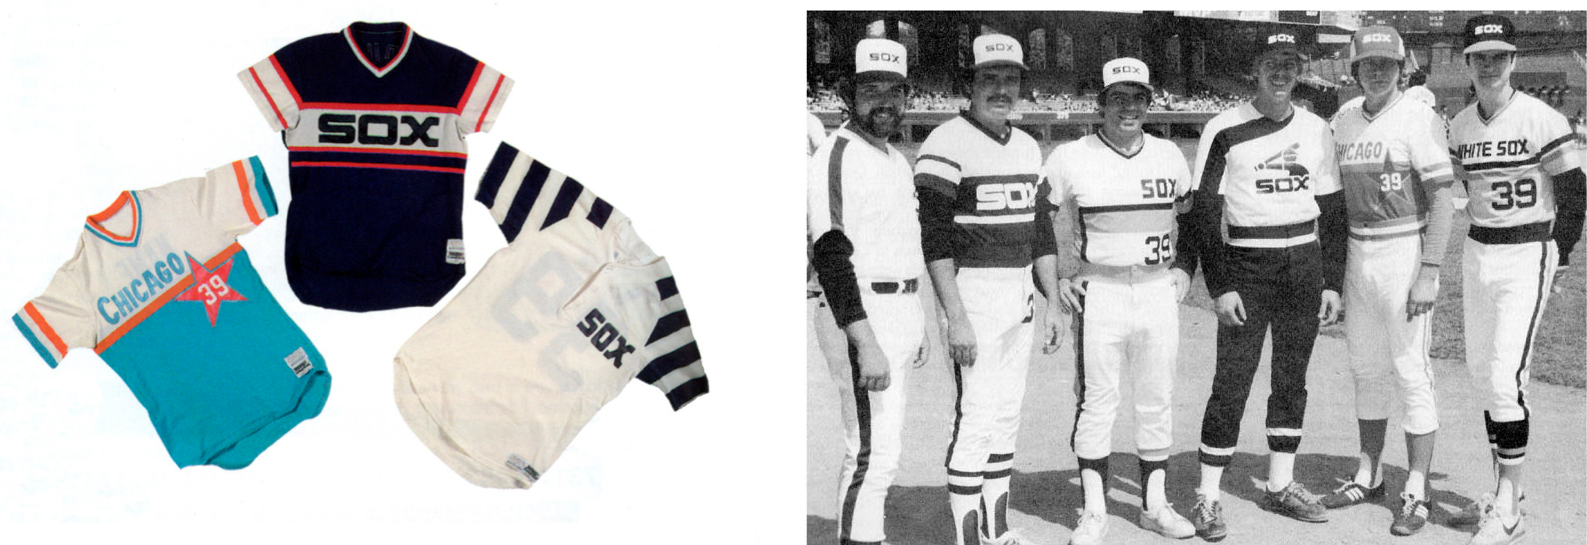 pretty nice d2bc9 436e8 New York Yankees uniforms are iconic, but team considered ...